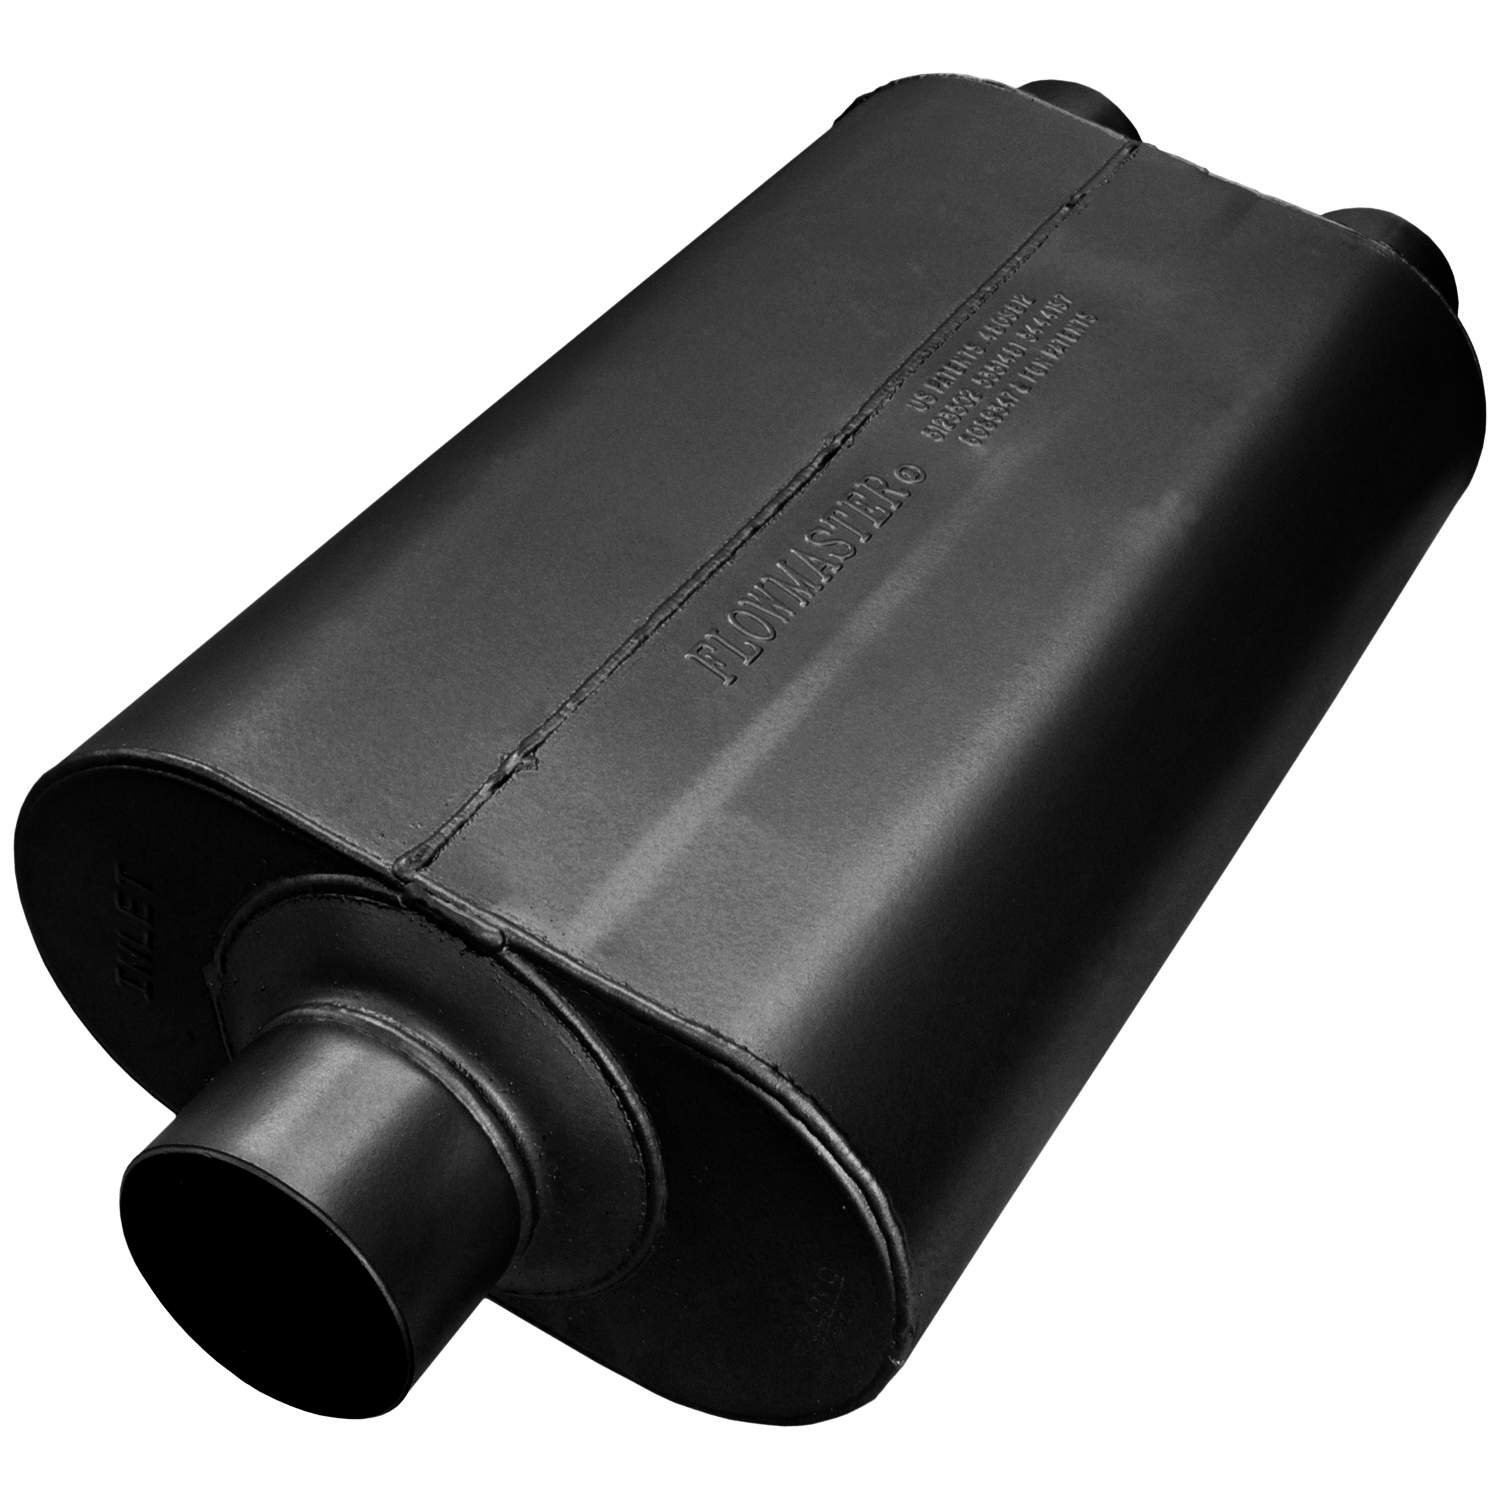 Flowmaster 9530572 50 H.D. Muffler - 3.00 Center IN / 2.50 Dual OUT - Moderate Sound